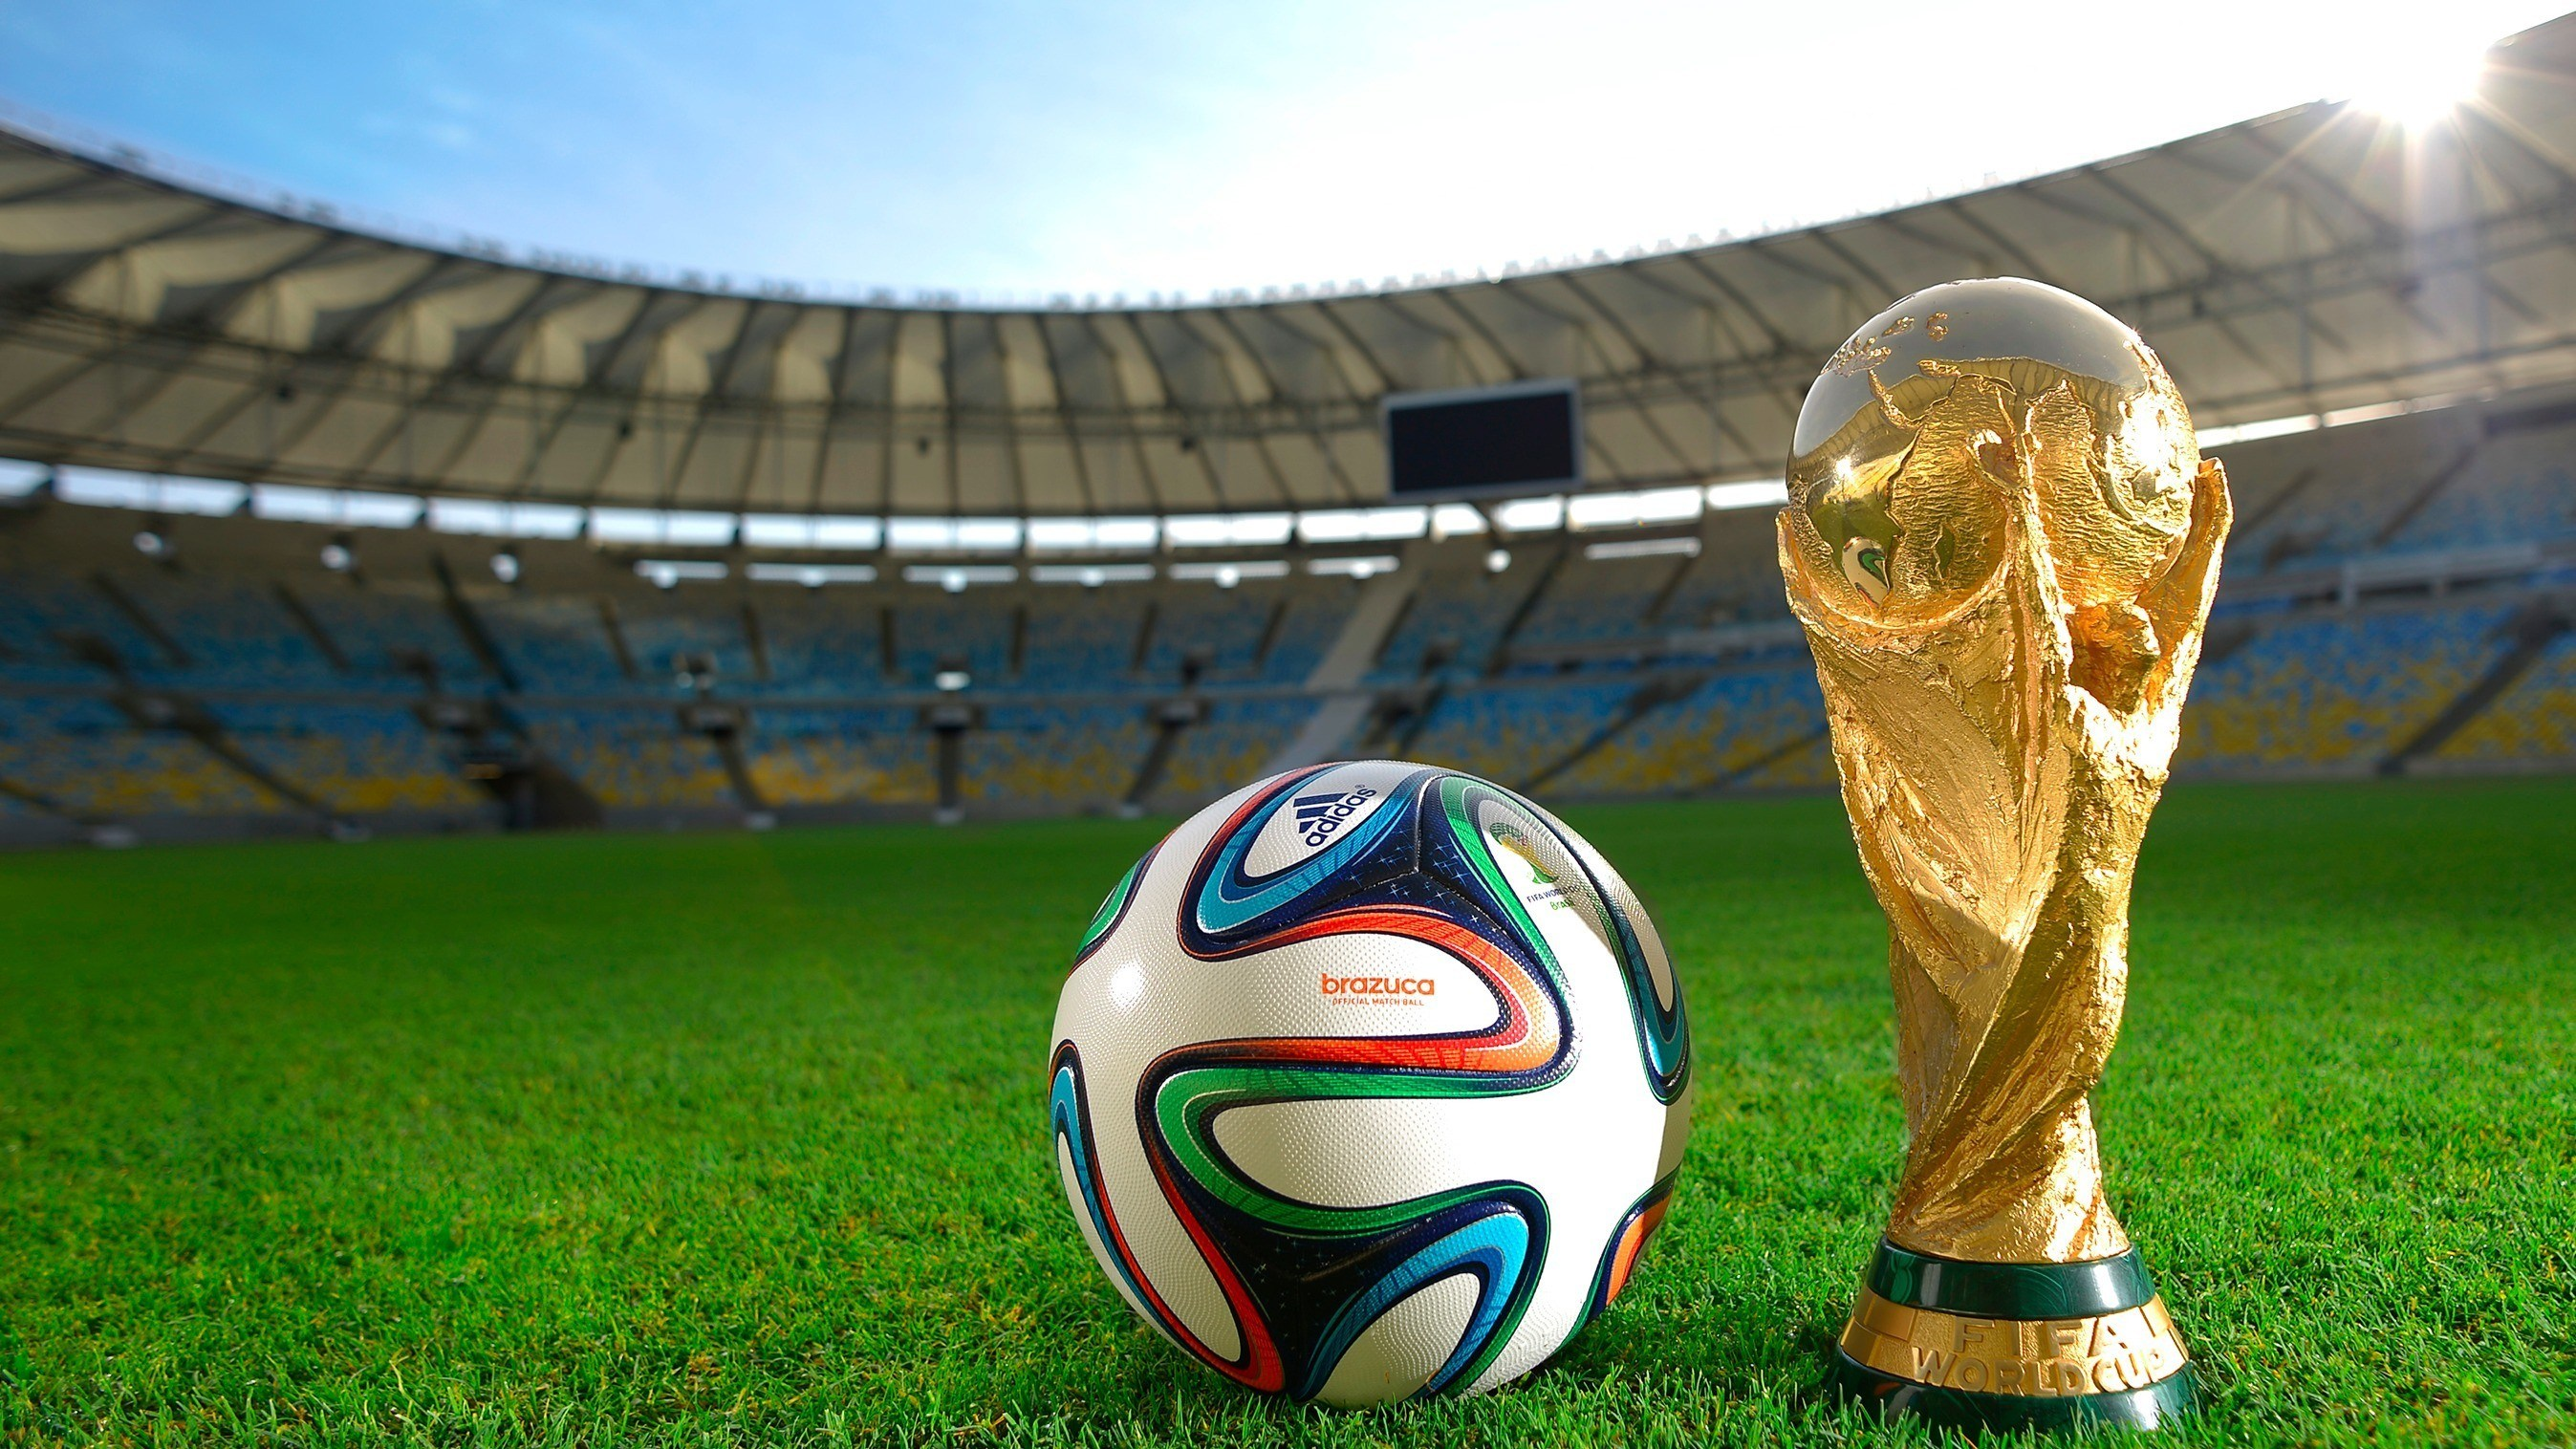 FIFA World Cup 2014 in Brazil saw expenses of $2,224 million dollars